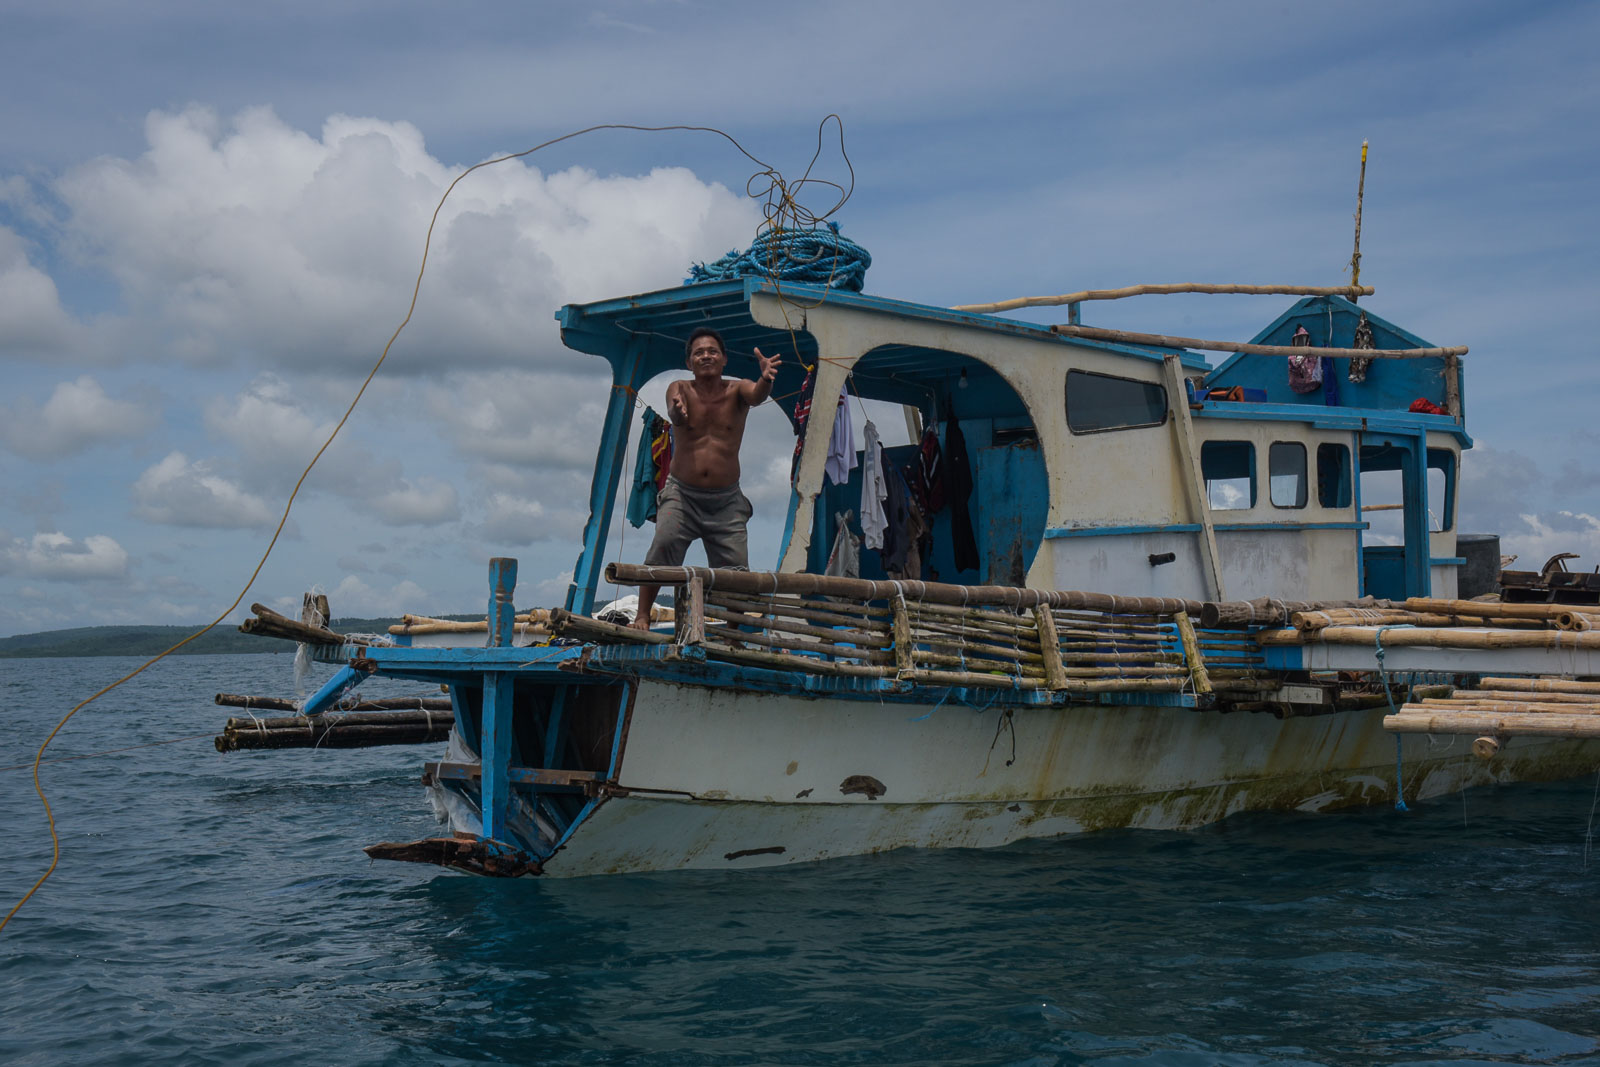 OFF-SHORE. The F/B Gem-Ver floats 5 minutes away by boat from the shore of Barangay San Roque in San Jose, Occidental Mindoro. All photos by LeAnne Jazul/Rappler